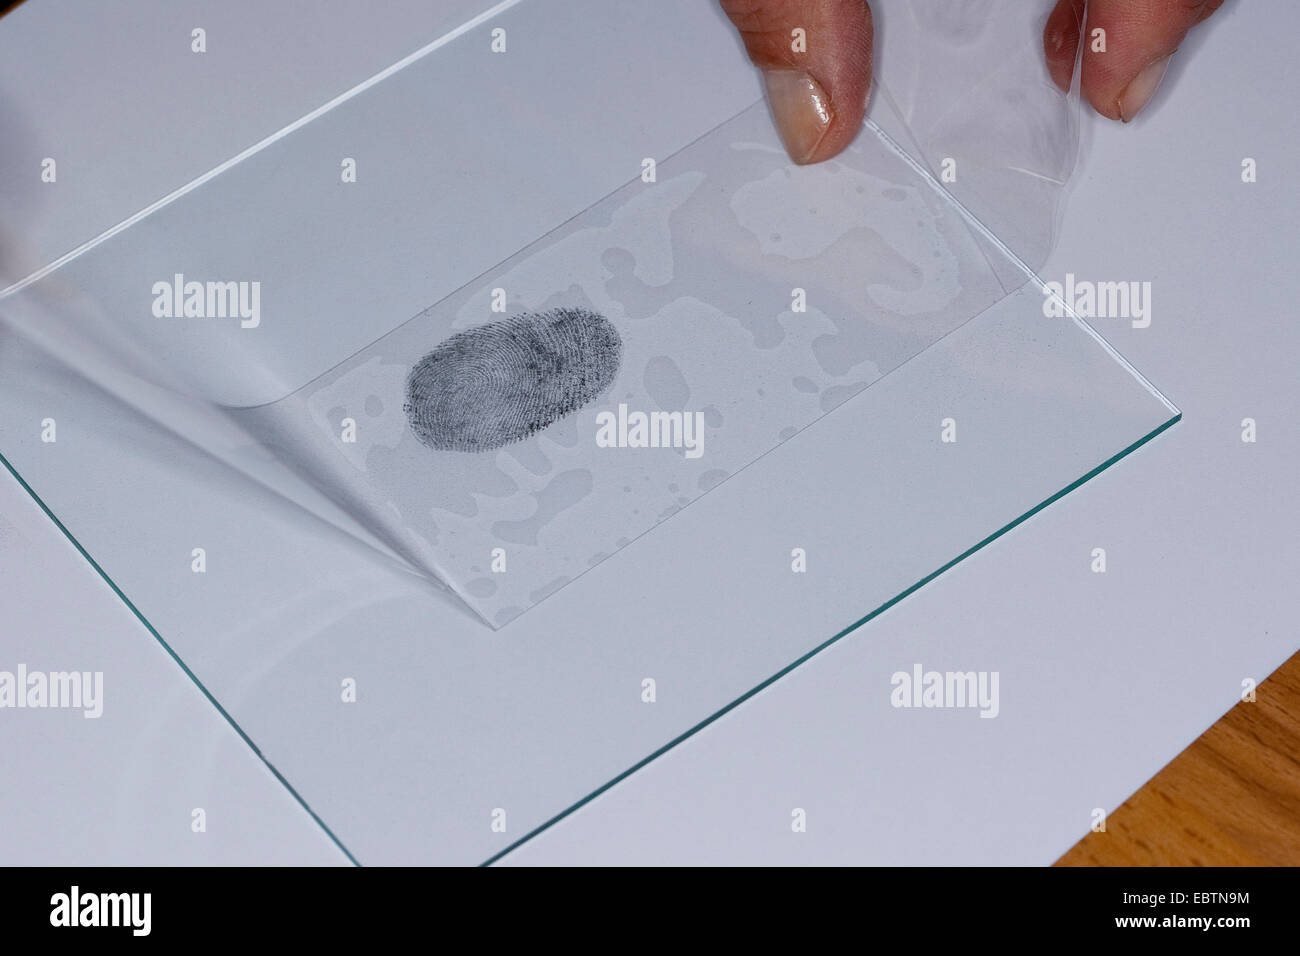 fingerprint fixed with graphite - Stock Image